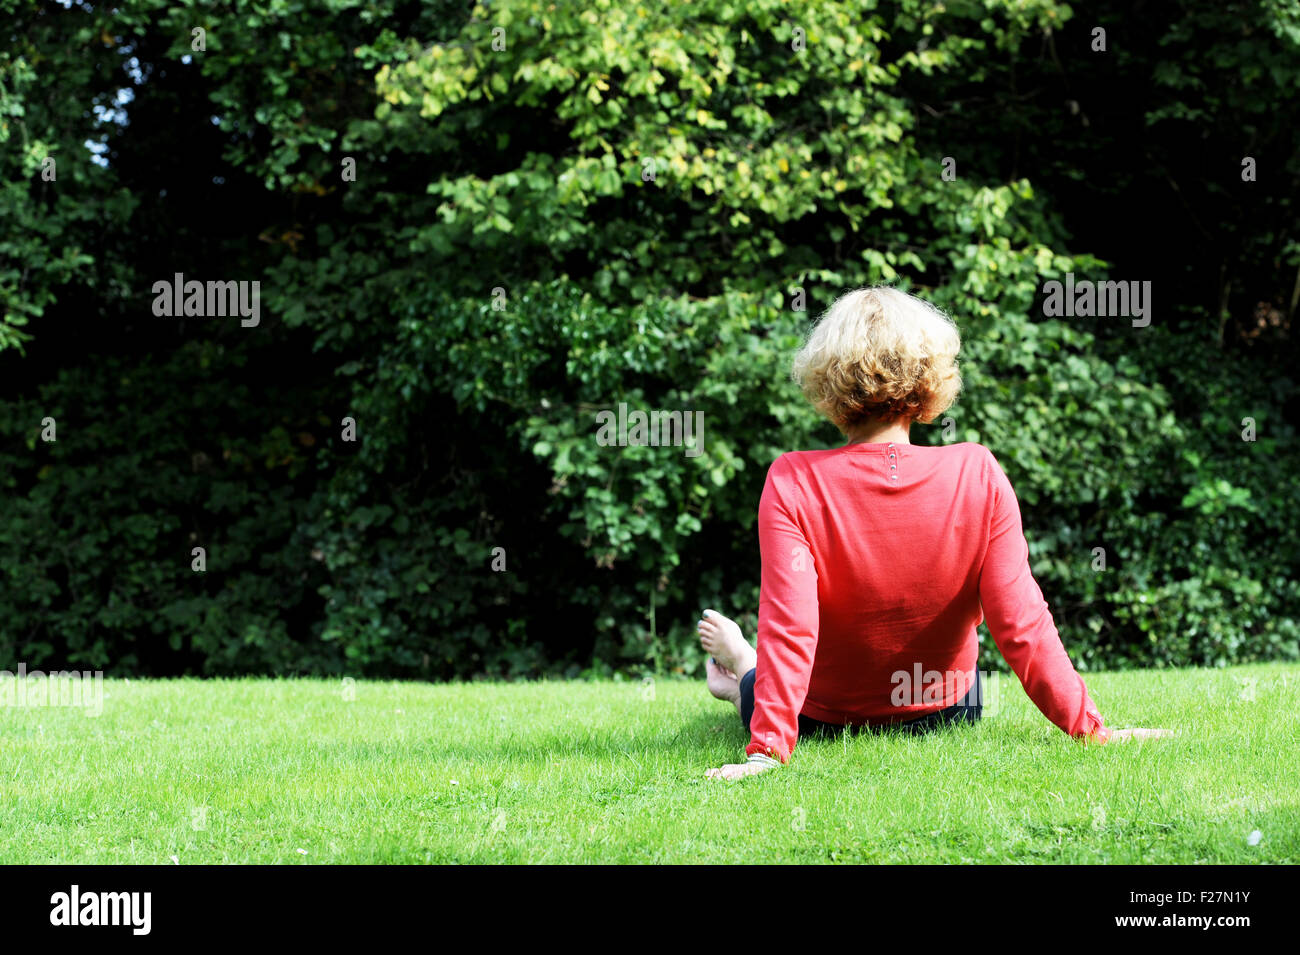 Back view of middle aged woman wearing coral pink coloured top and blue trousers sitting on grass outdoors Stock Photo